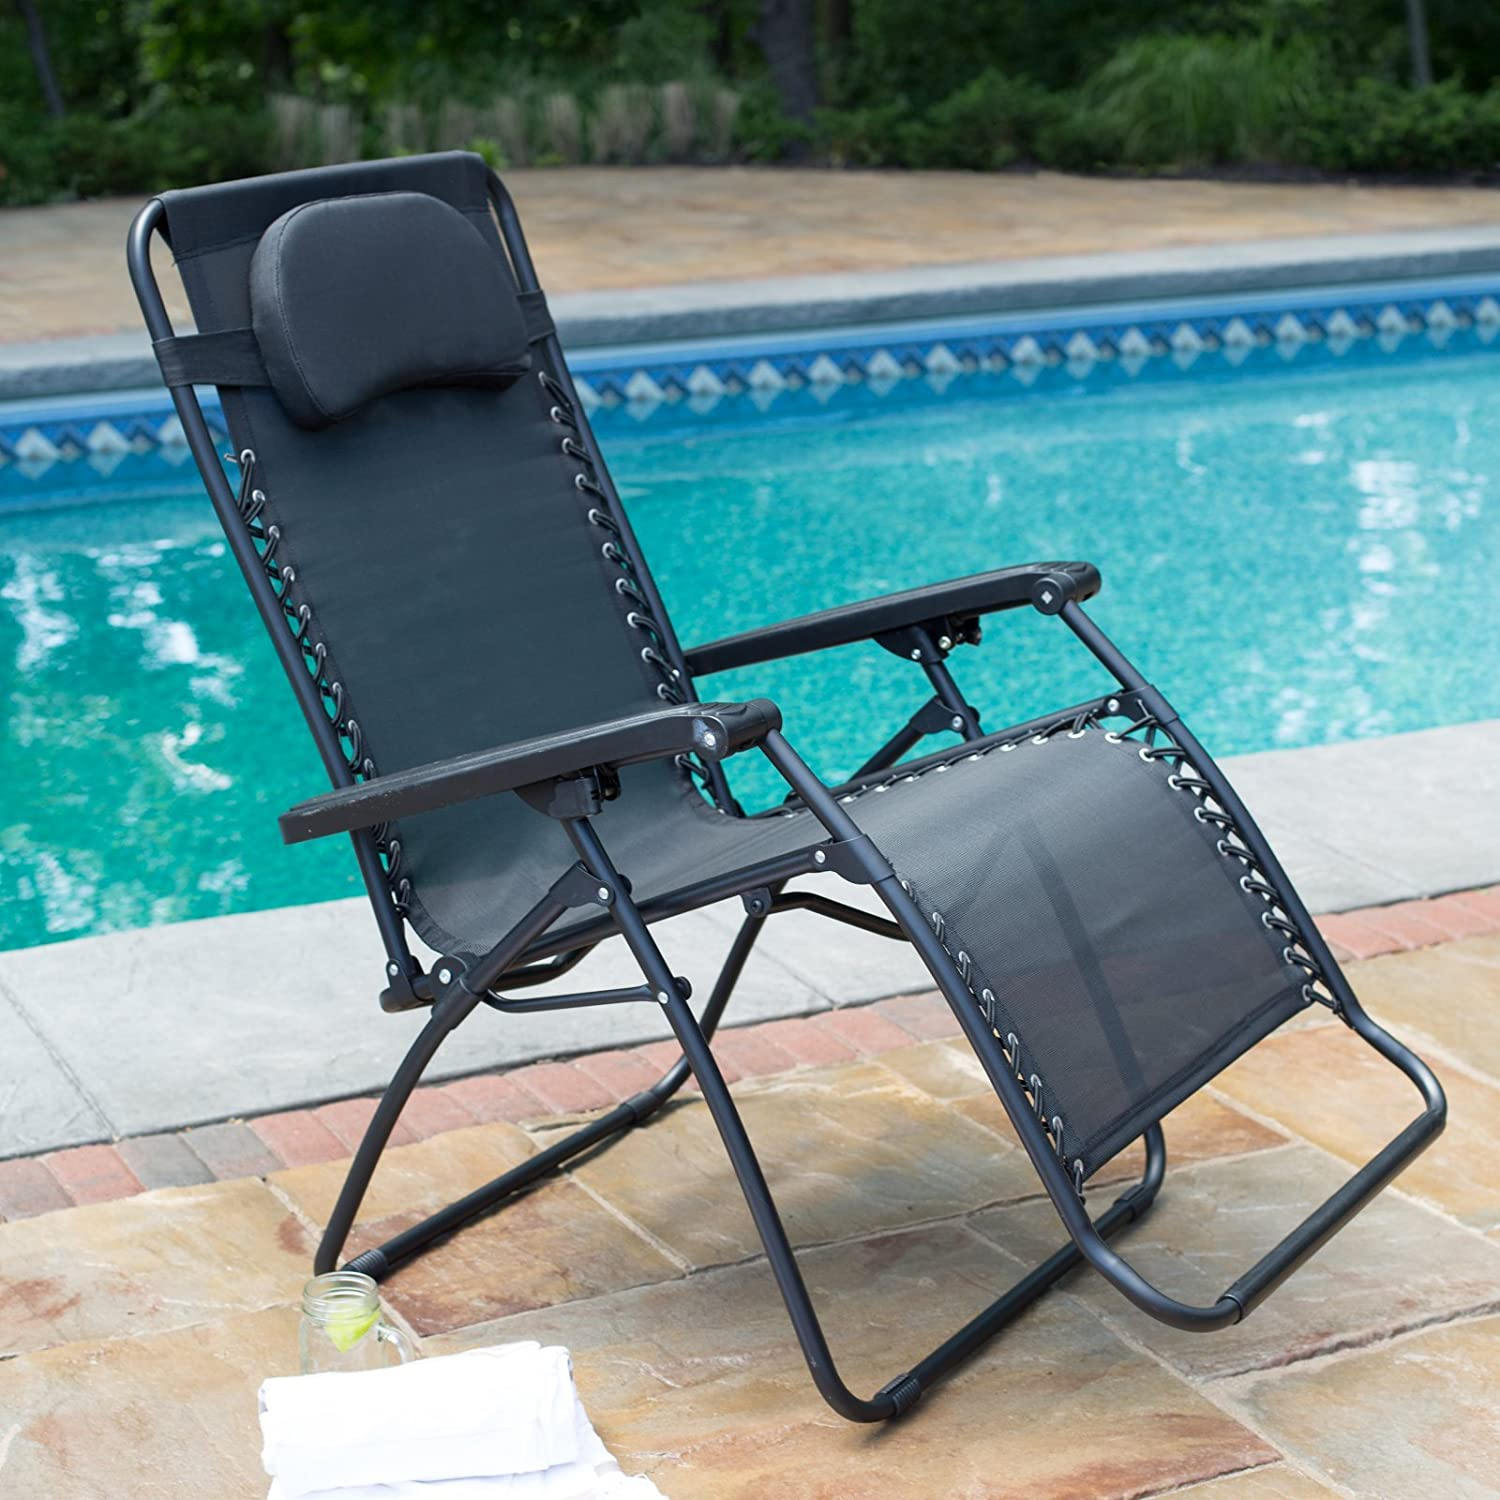 Caravan Sports Oversized Zero Gravity Recliner Lounge Chairs